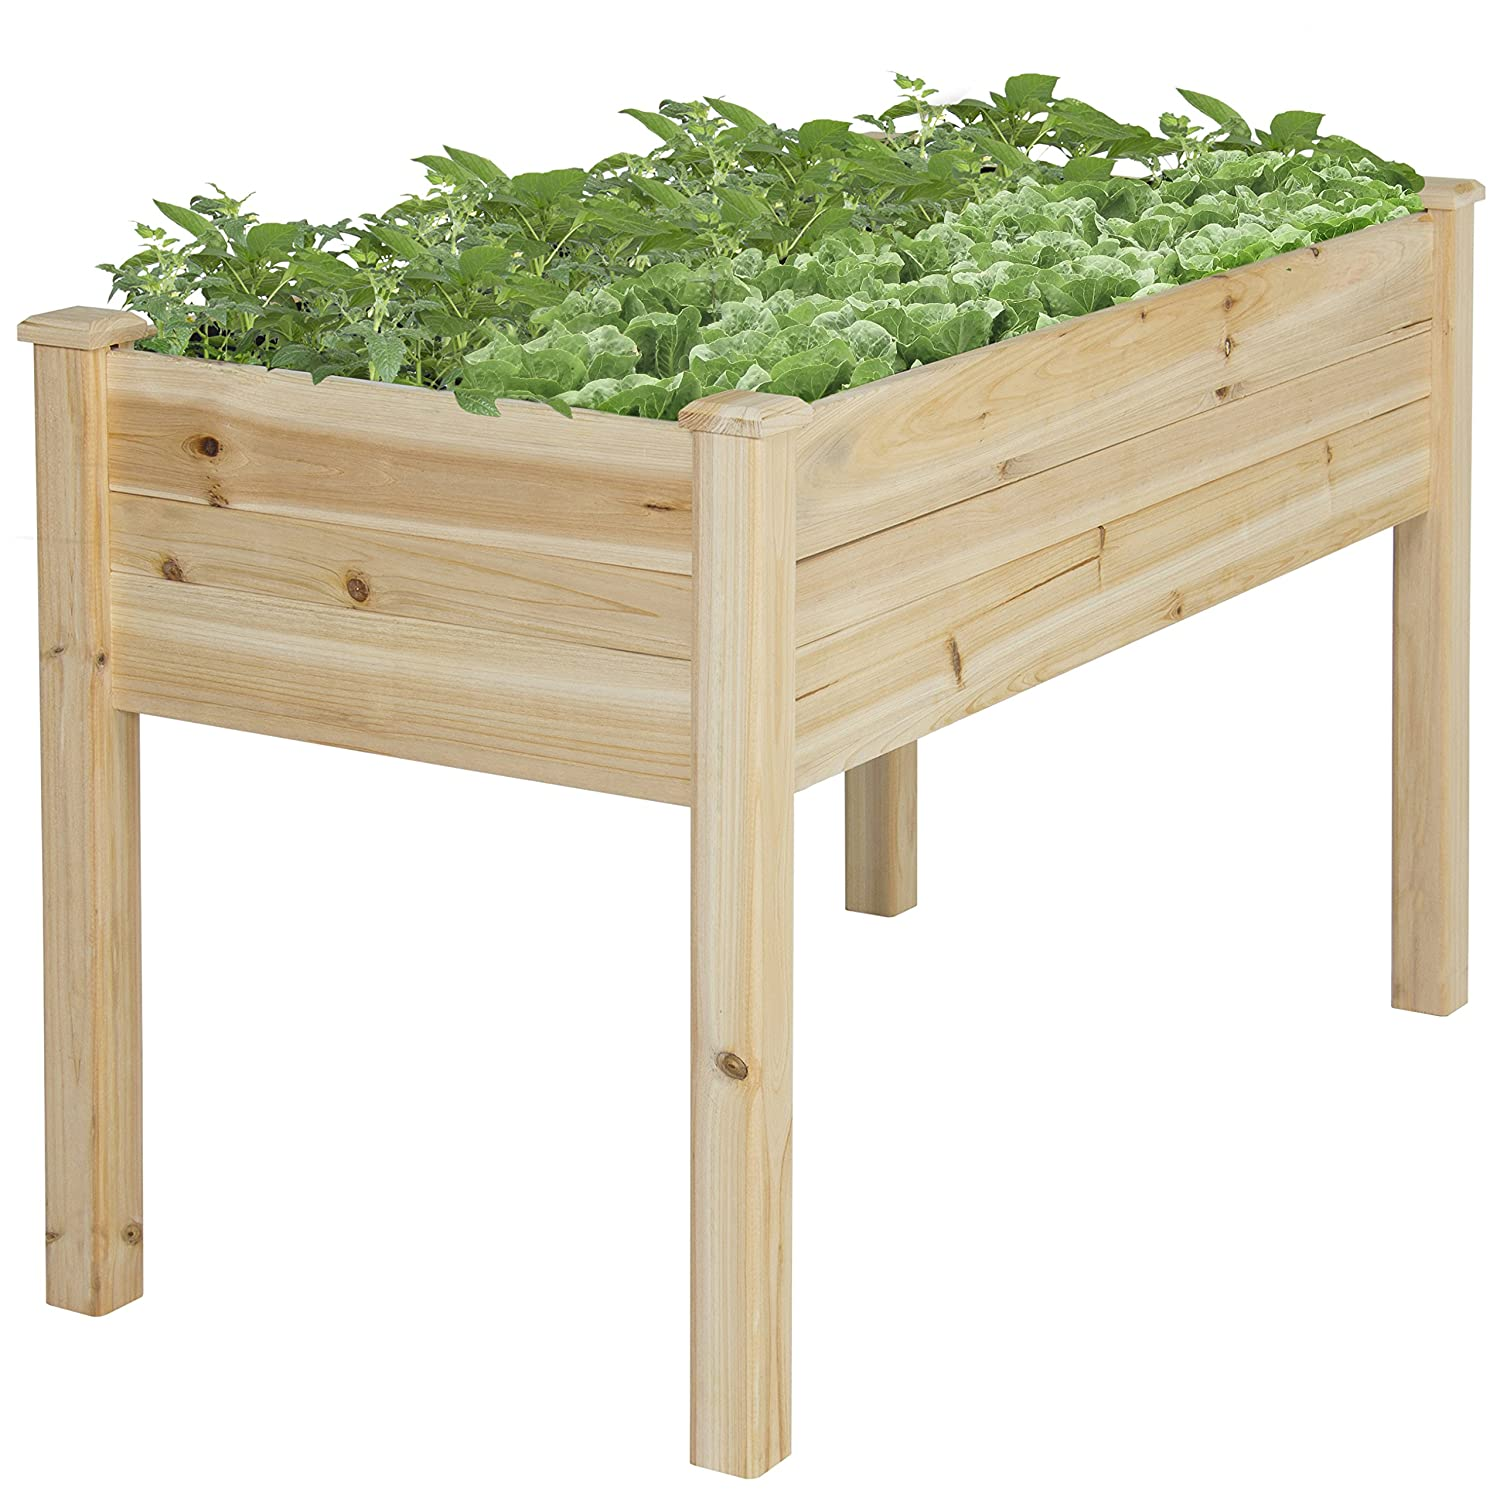 Best Choice Products Wooden Raised Garden Bed Kit